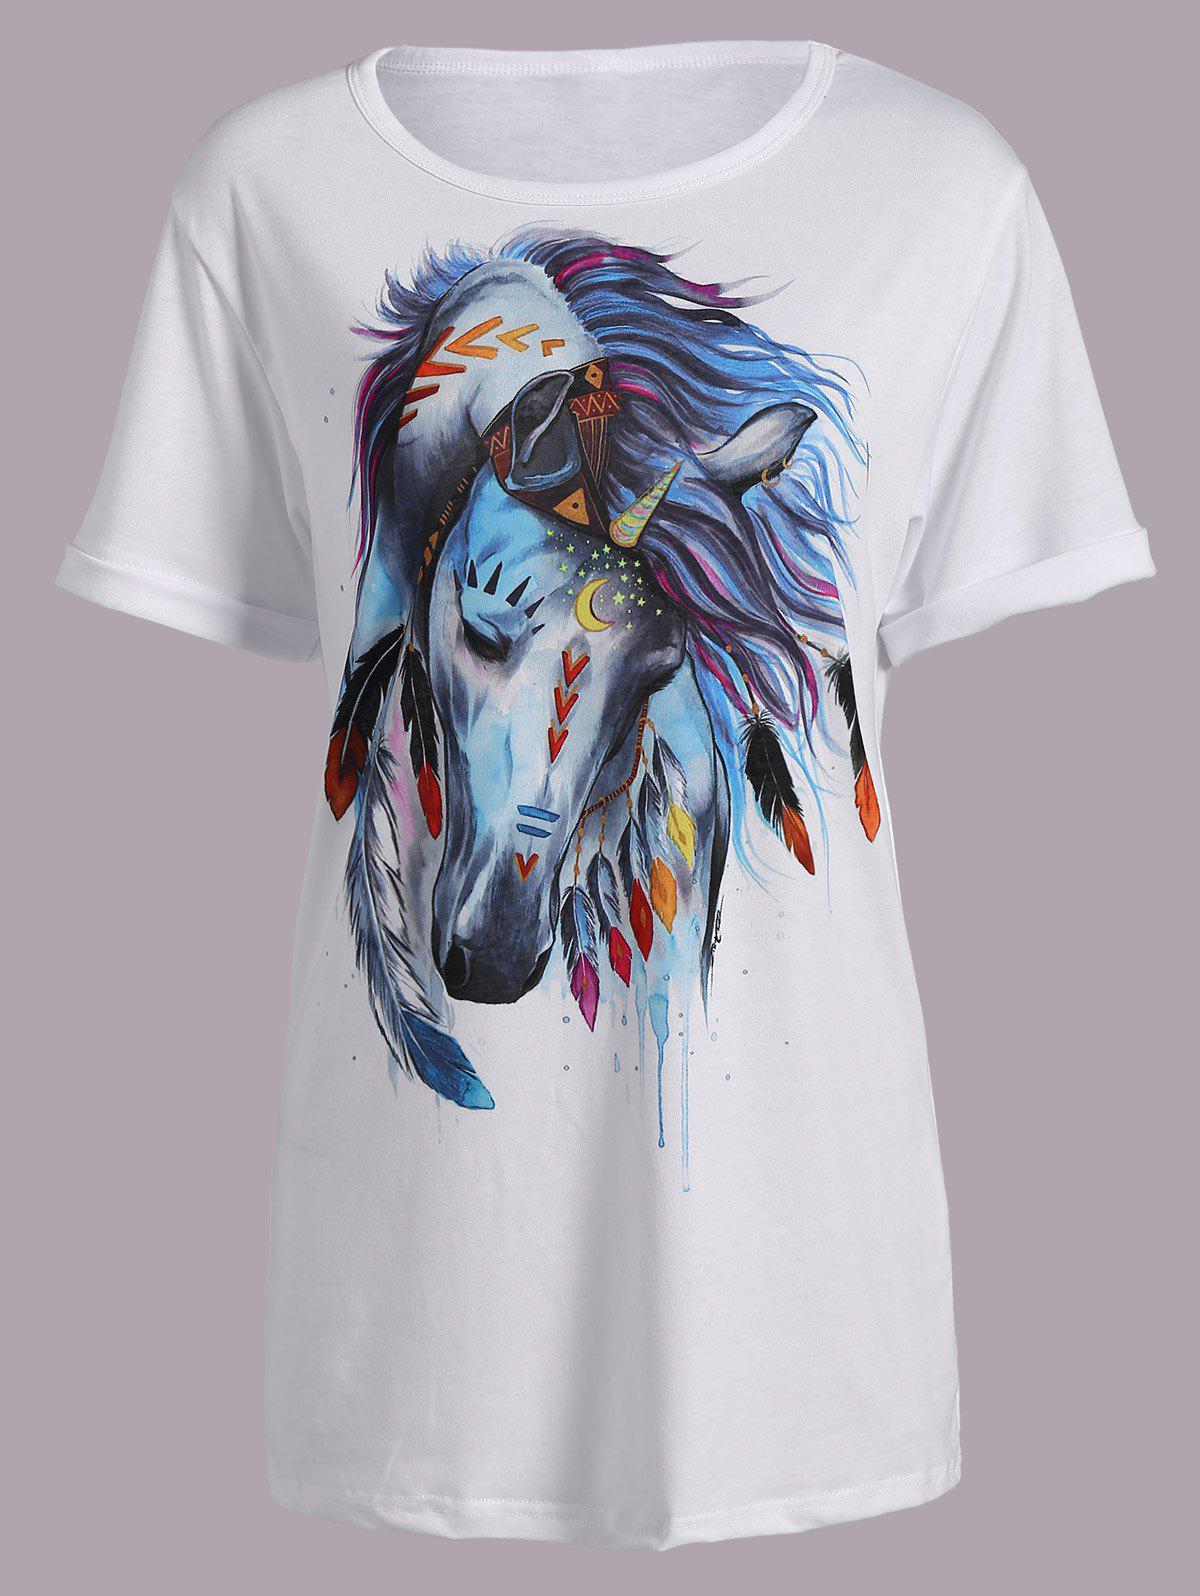 Casual Horse Print Short Sleeve Round Neck Women's T-Shirt - WHITE XL